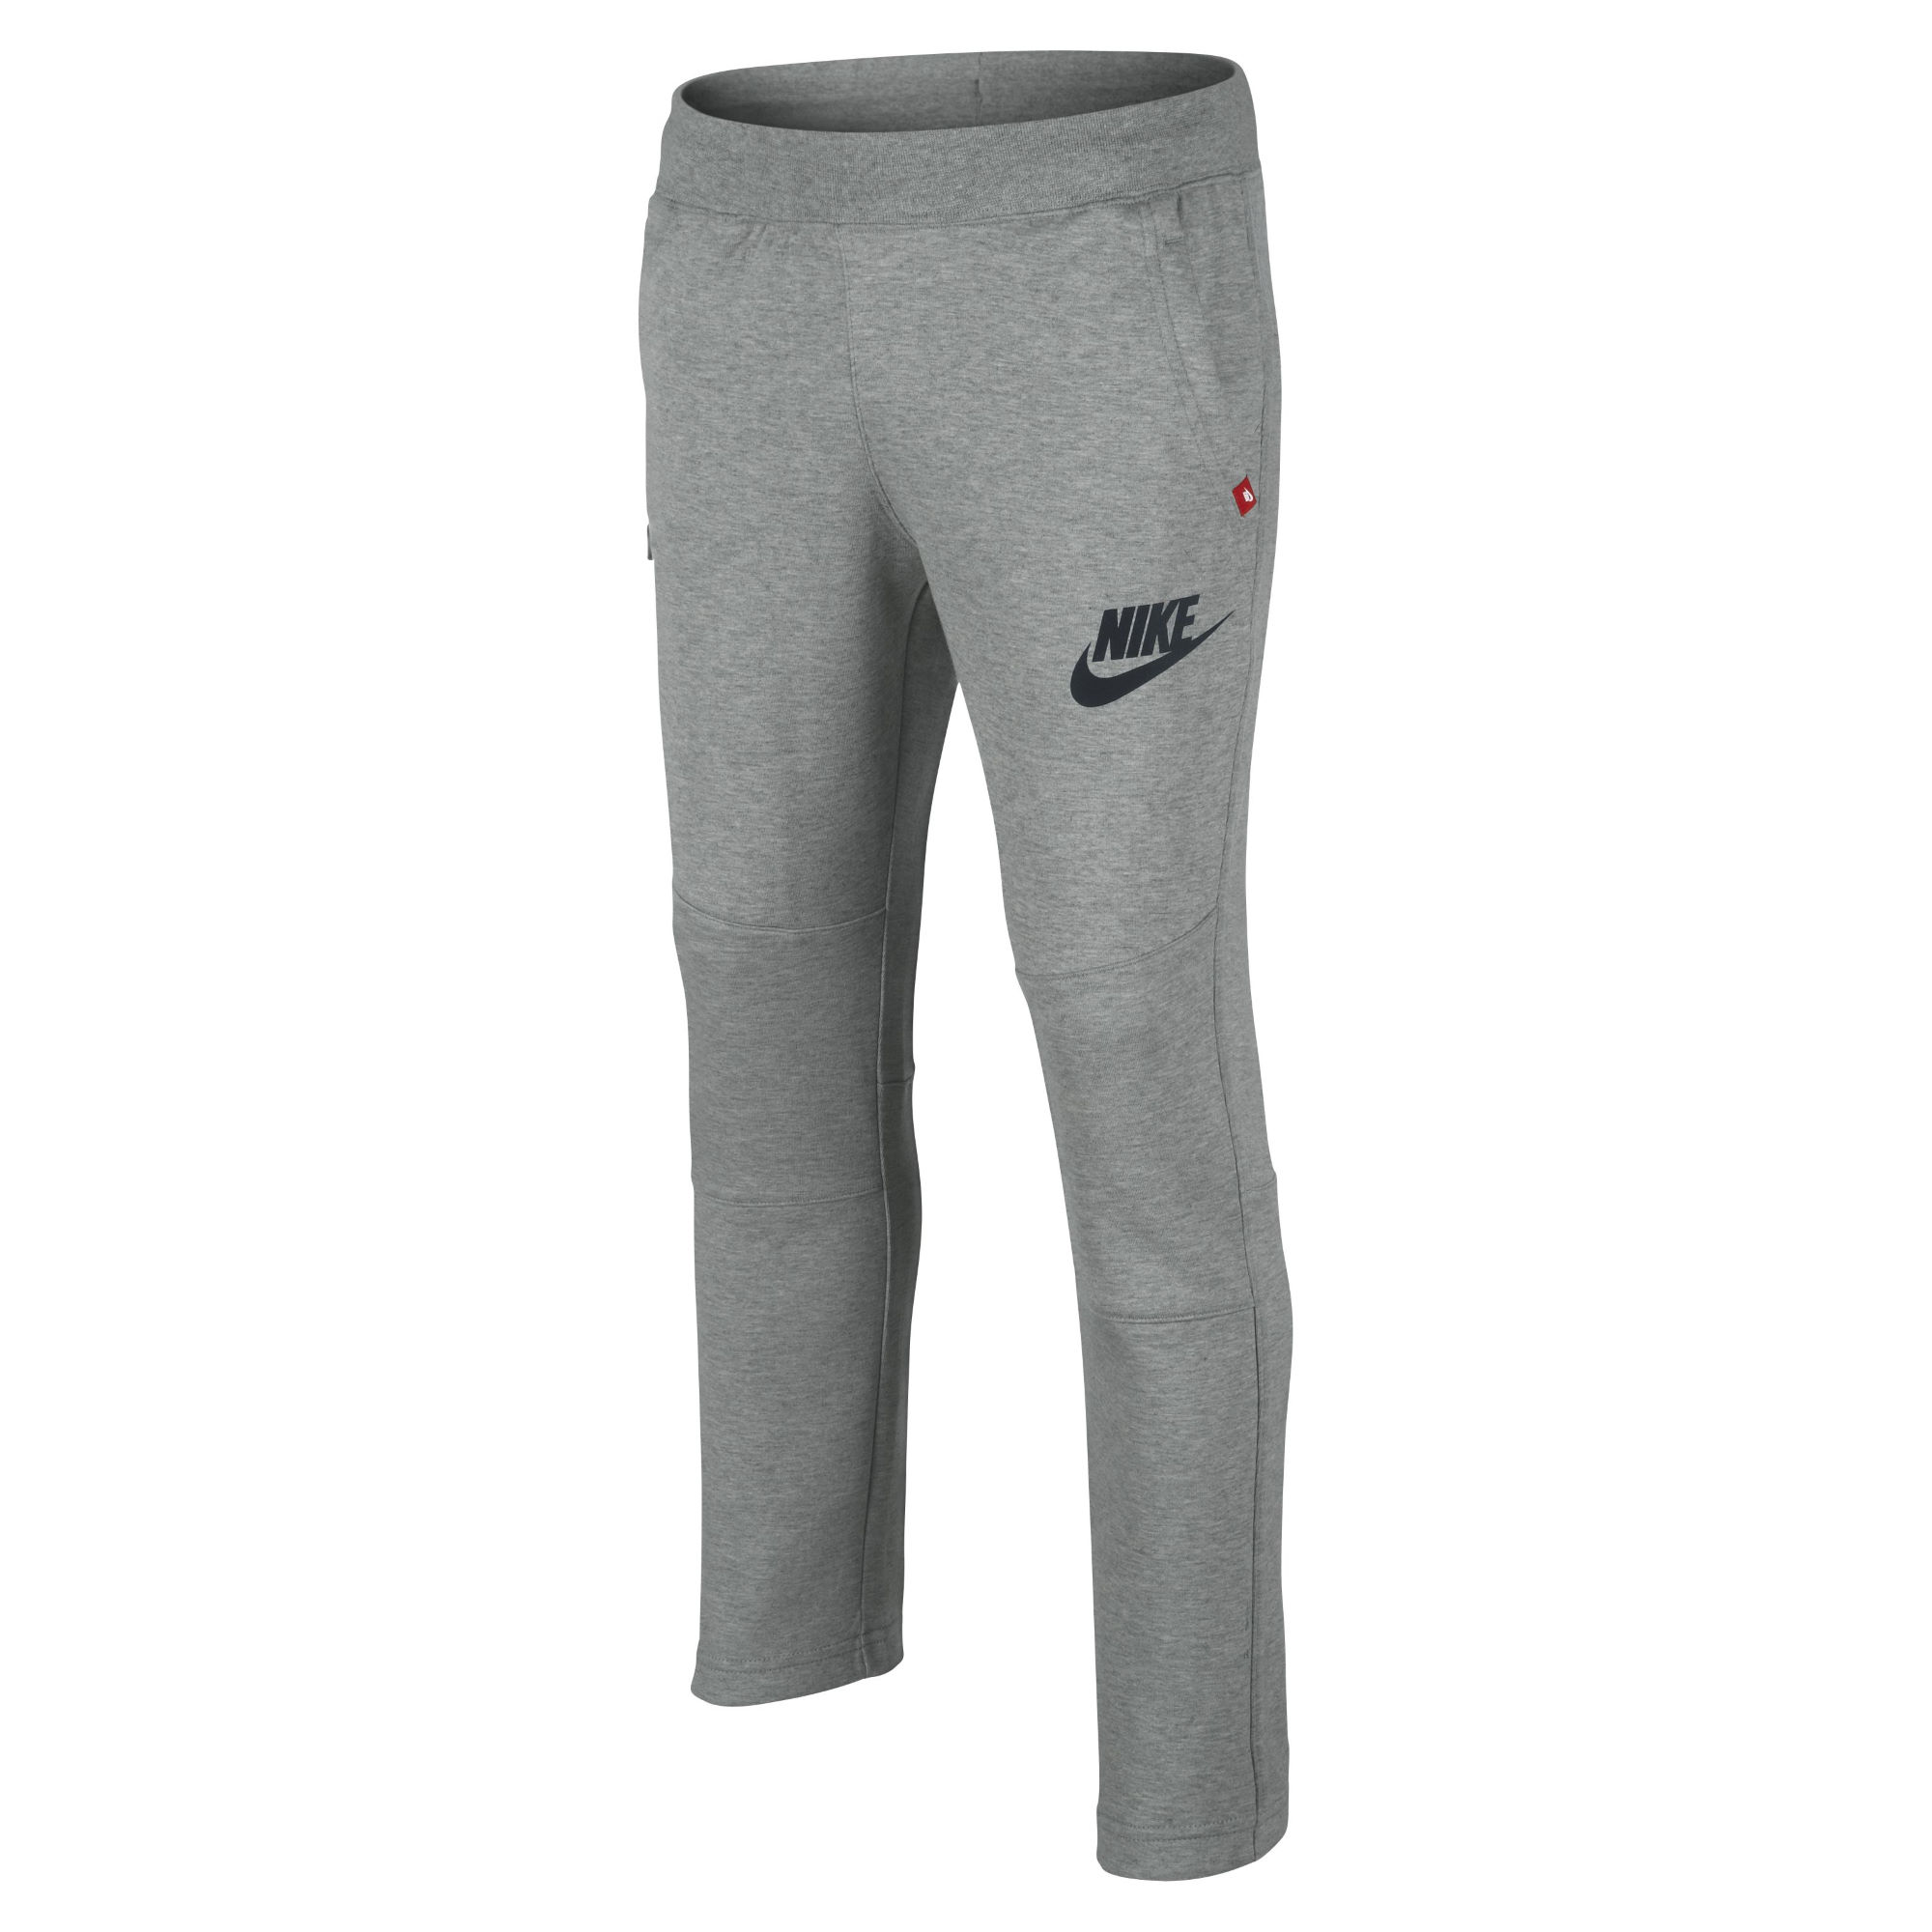 Nike sweat pants - results from brands Nike, NFL, Capo, products like Nike Purdue Boilermakers Infant Creeper Sweat Set - Black/Old Gold/Charcoal, Men's, Size: MO, Nike Therma Training Pants, Big Boys - Black XL (18/20), Tribute Poly Track Pants - Multicolor - Nike Sweats.